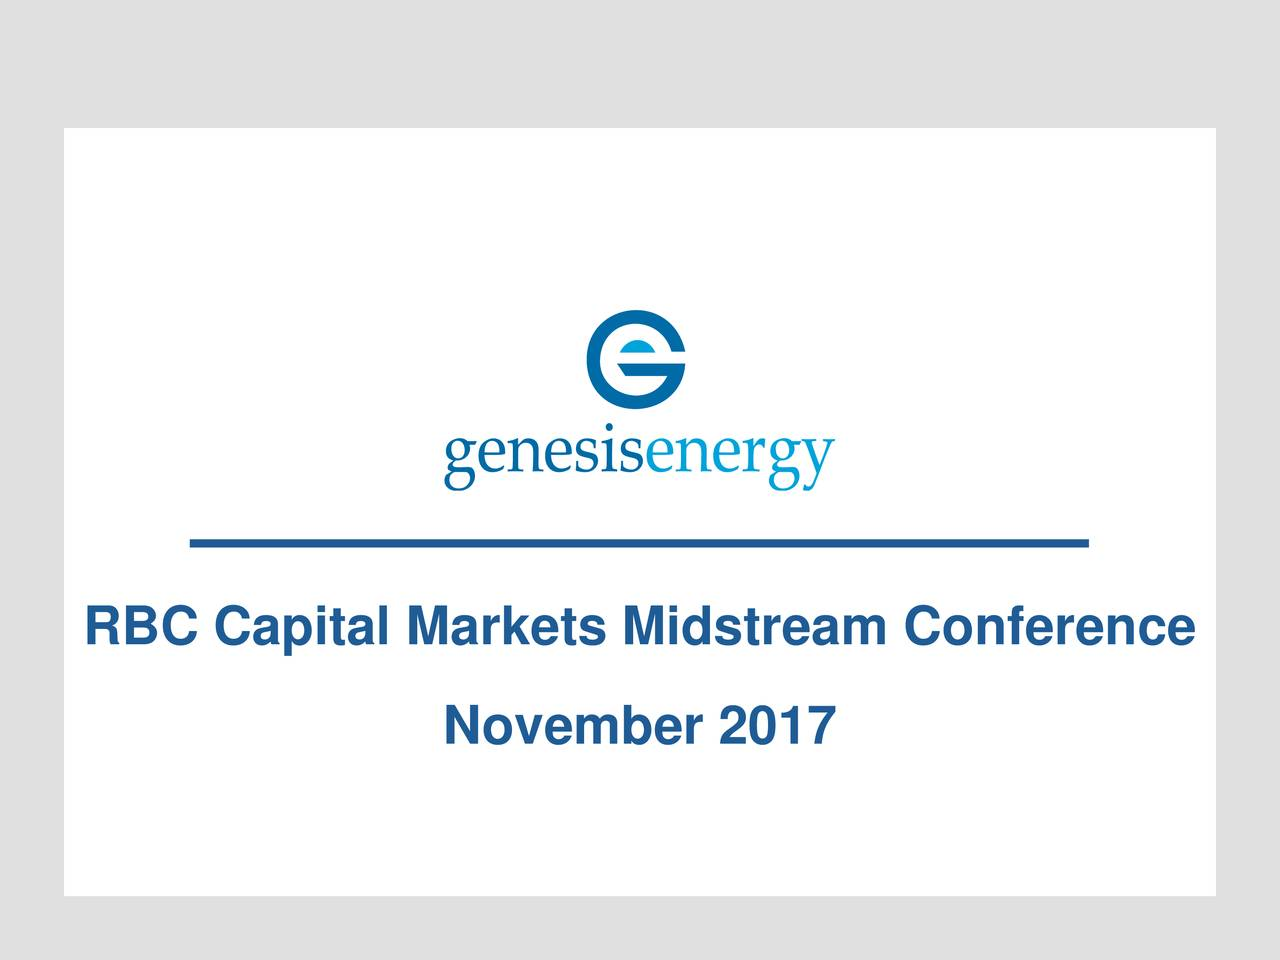 Rbc Capital Markets >> Genesis Energy Gel Presents At 2017 Rbc Capital Markets Midstream